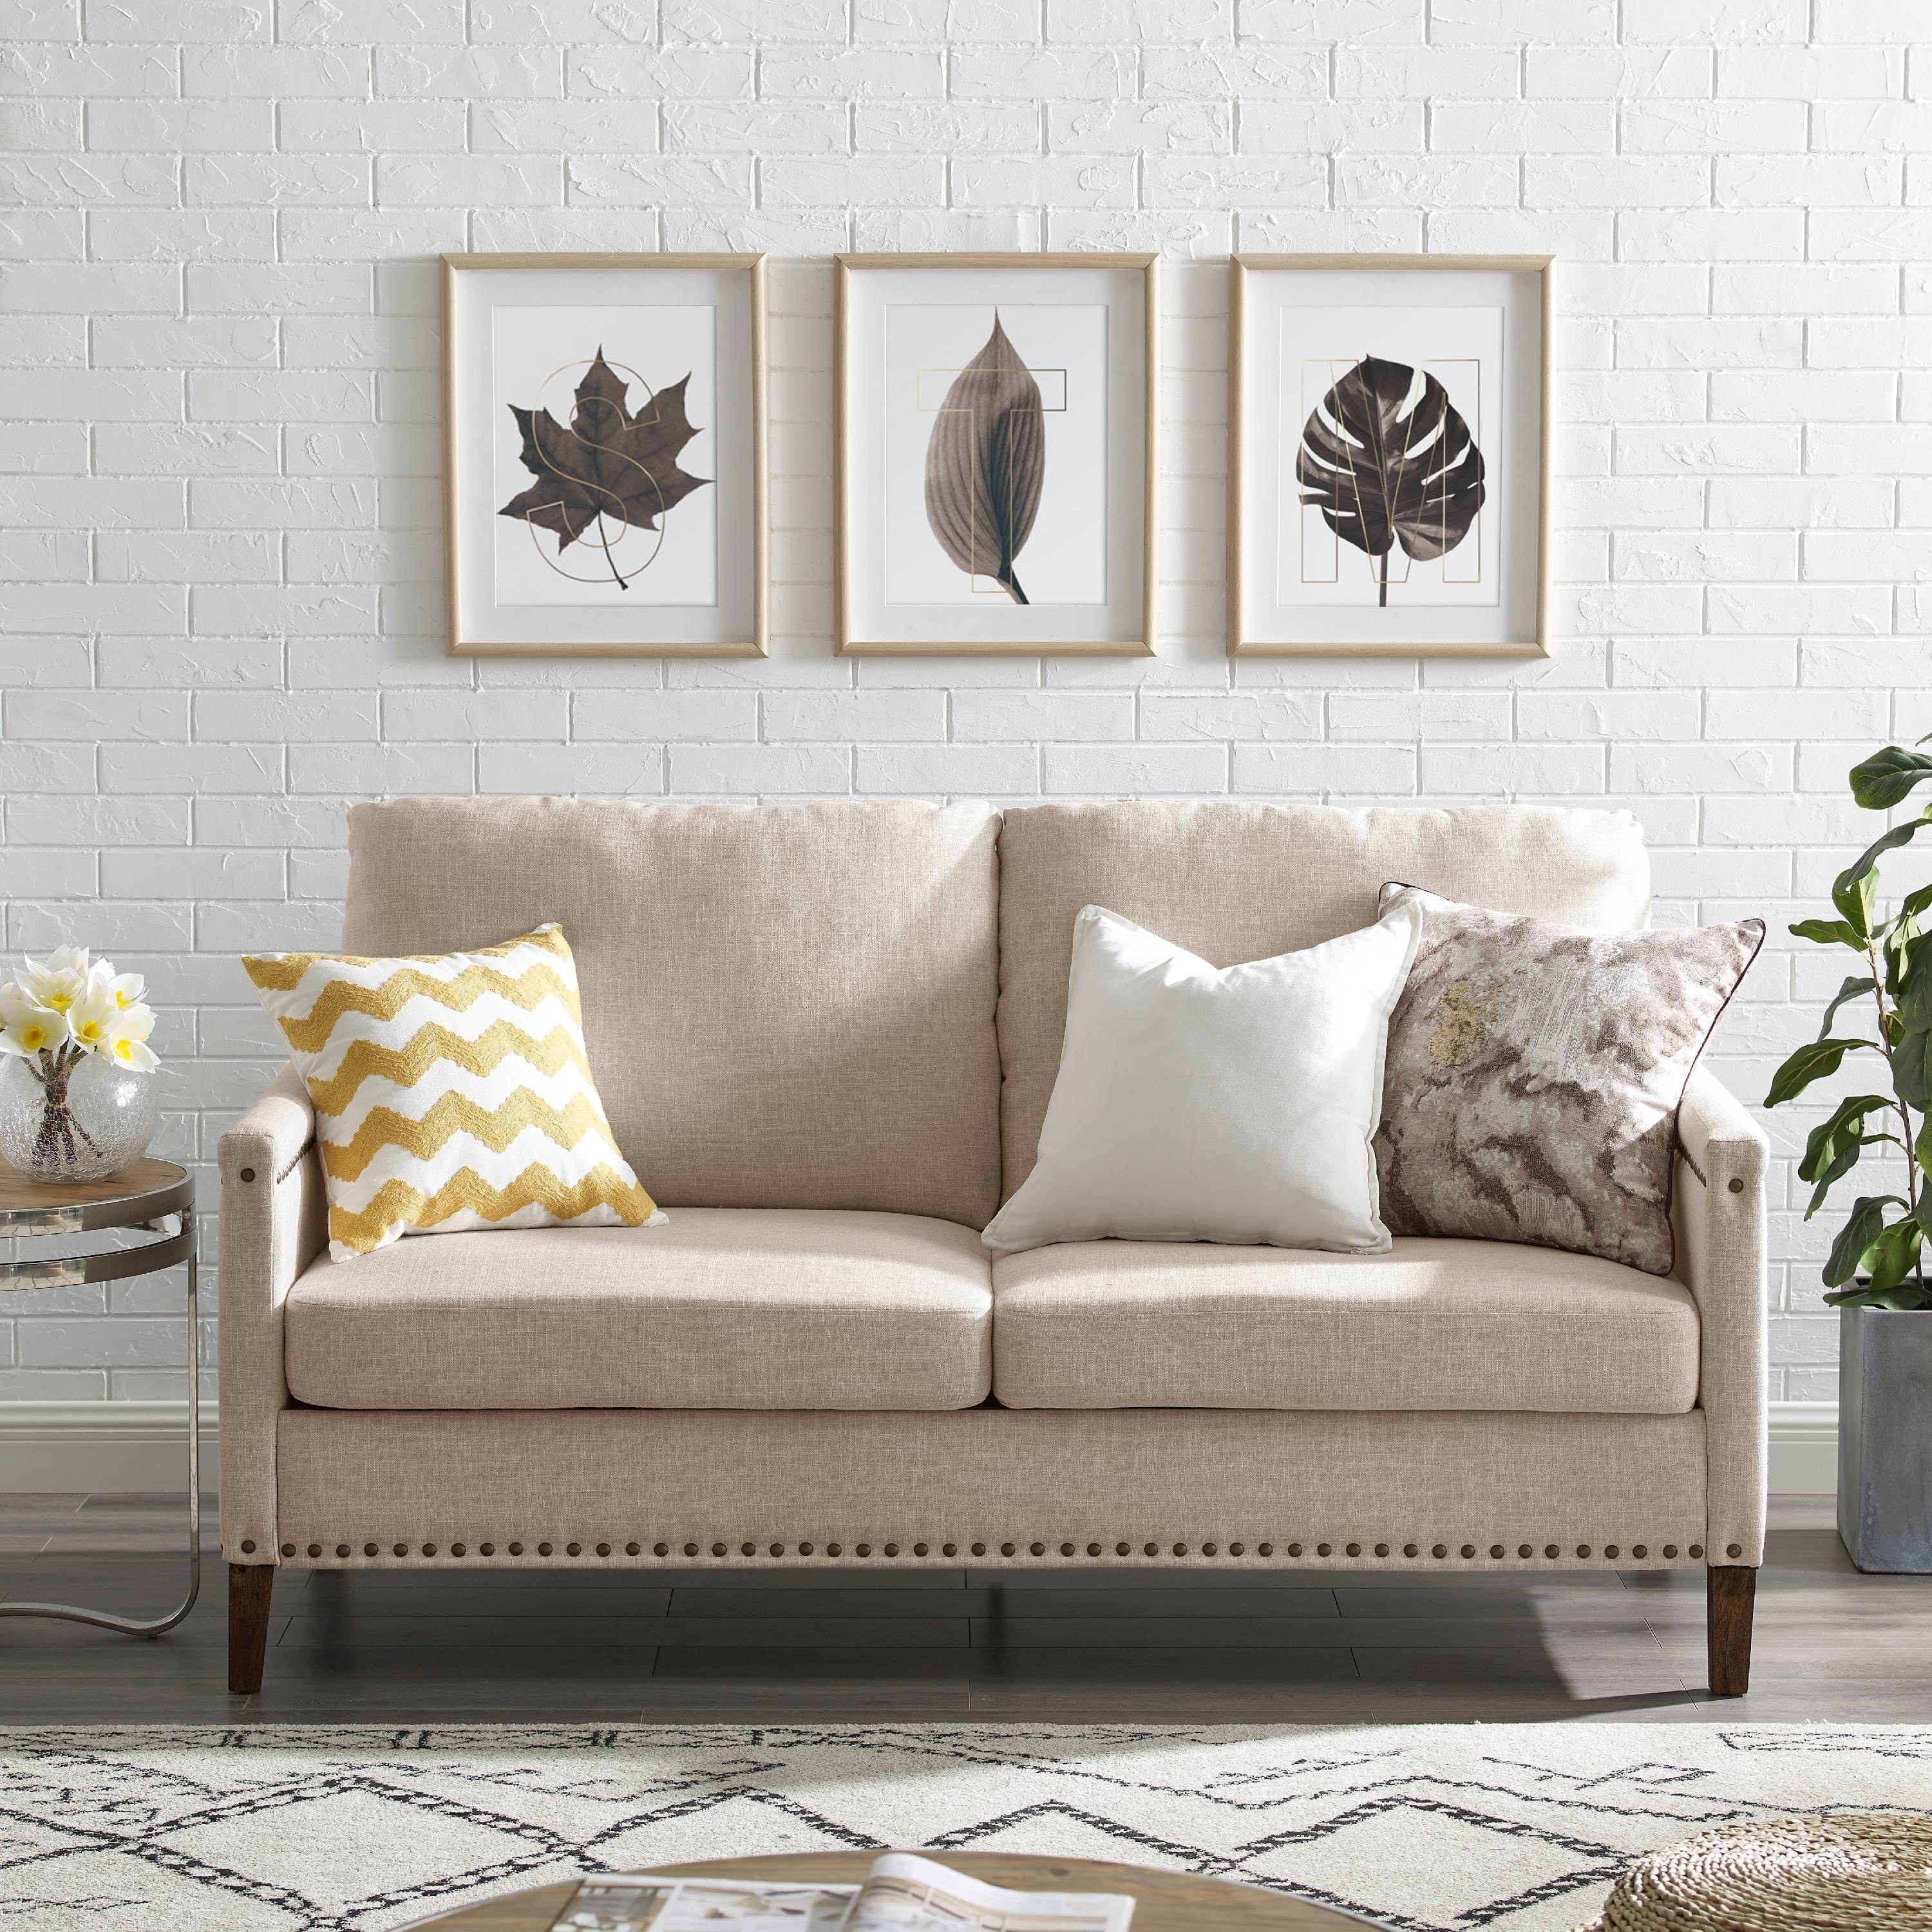 The tan sofa in a living room